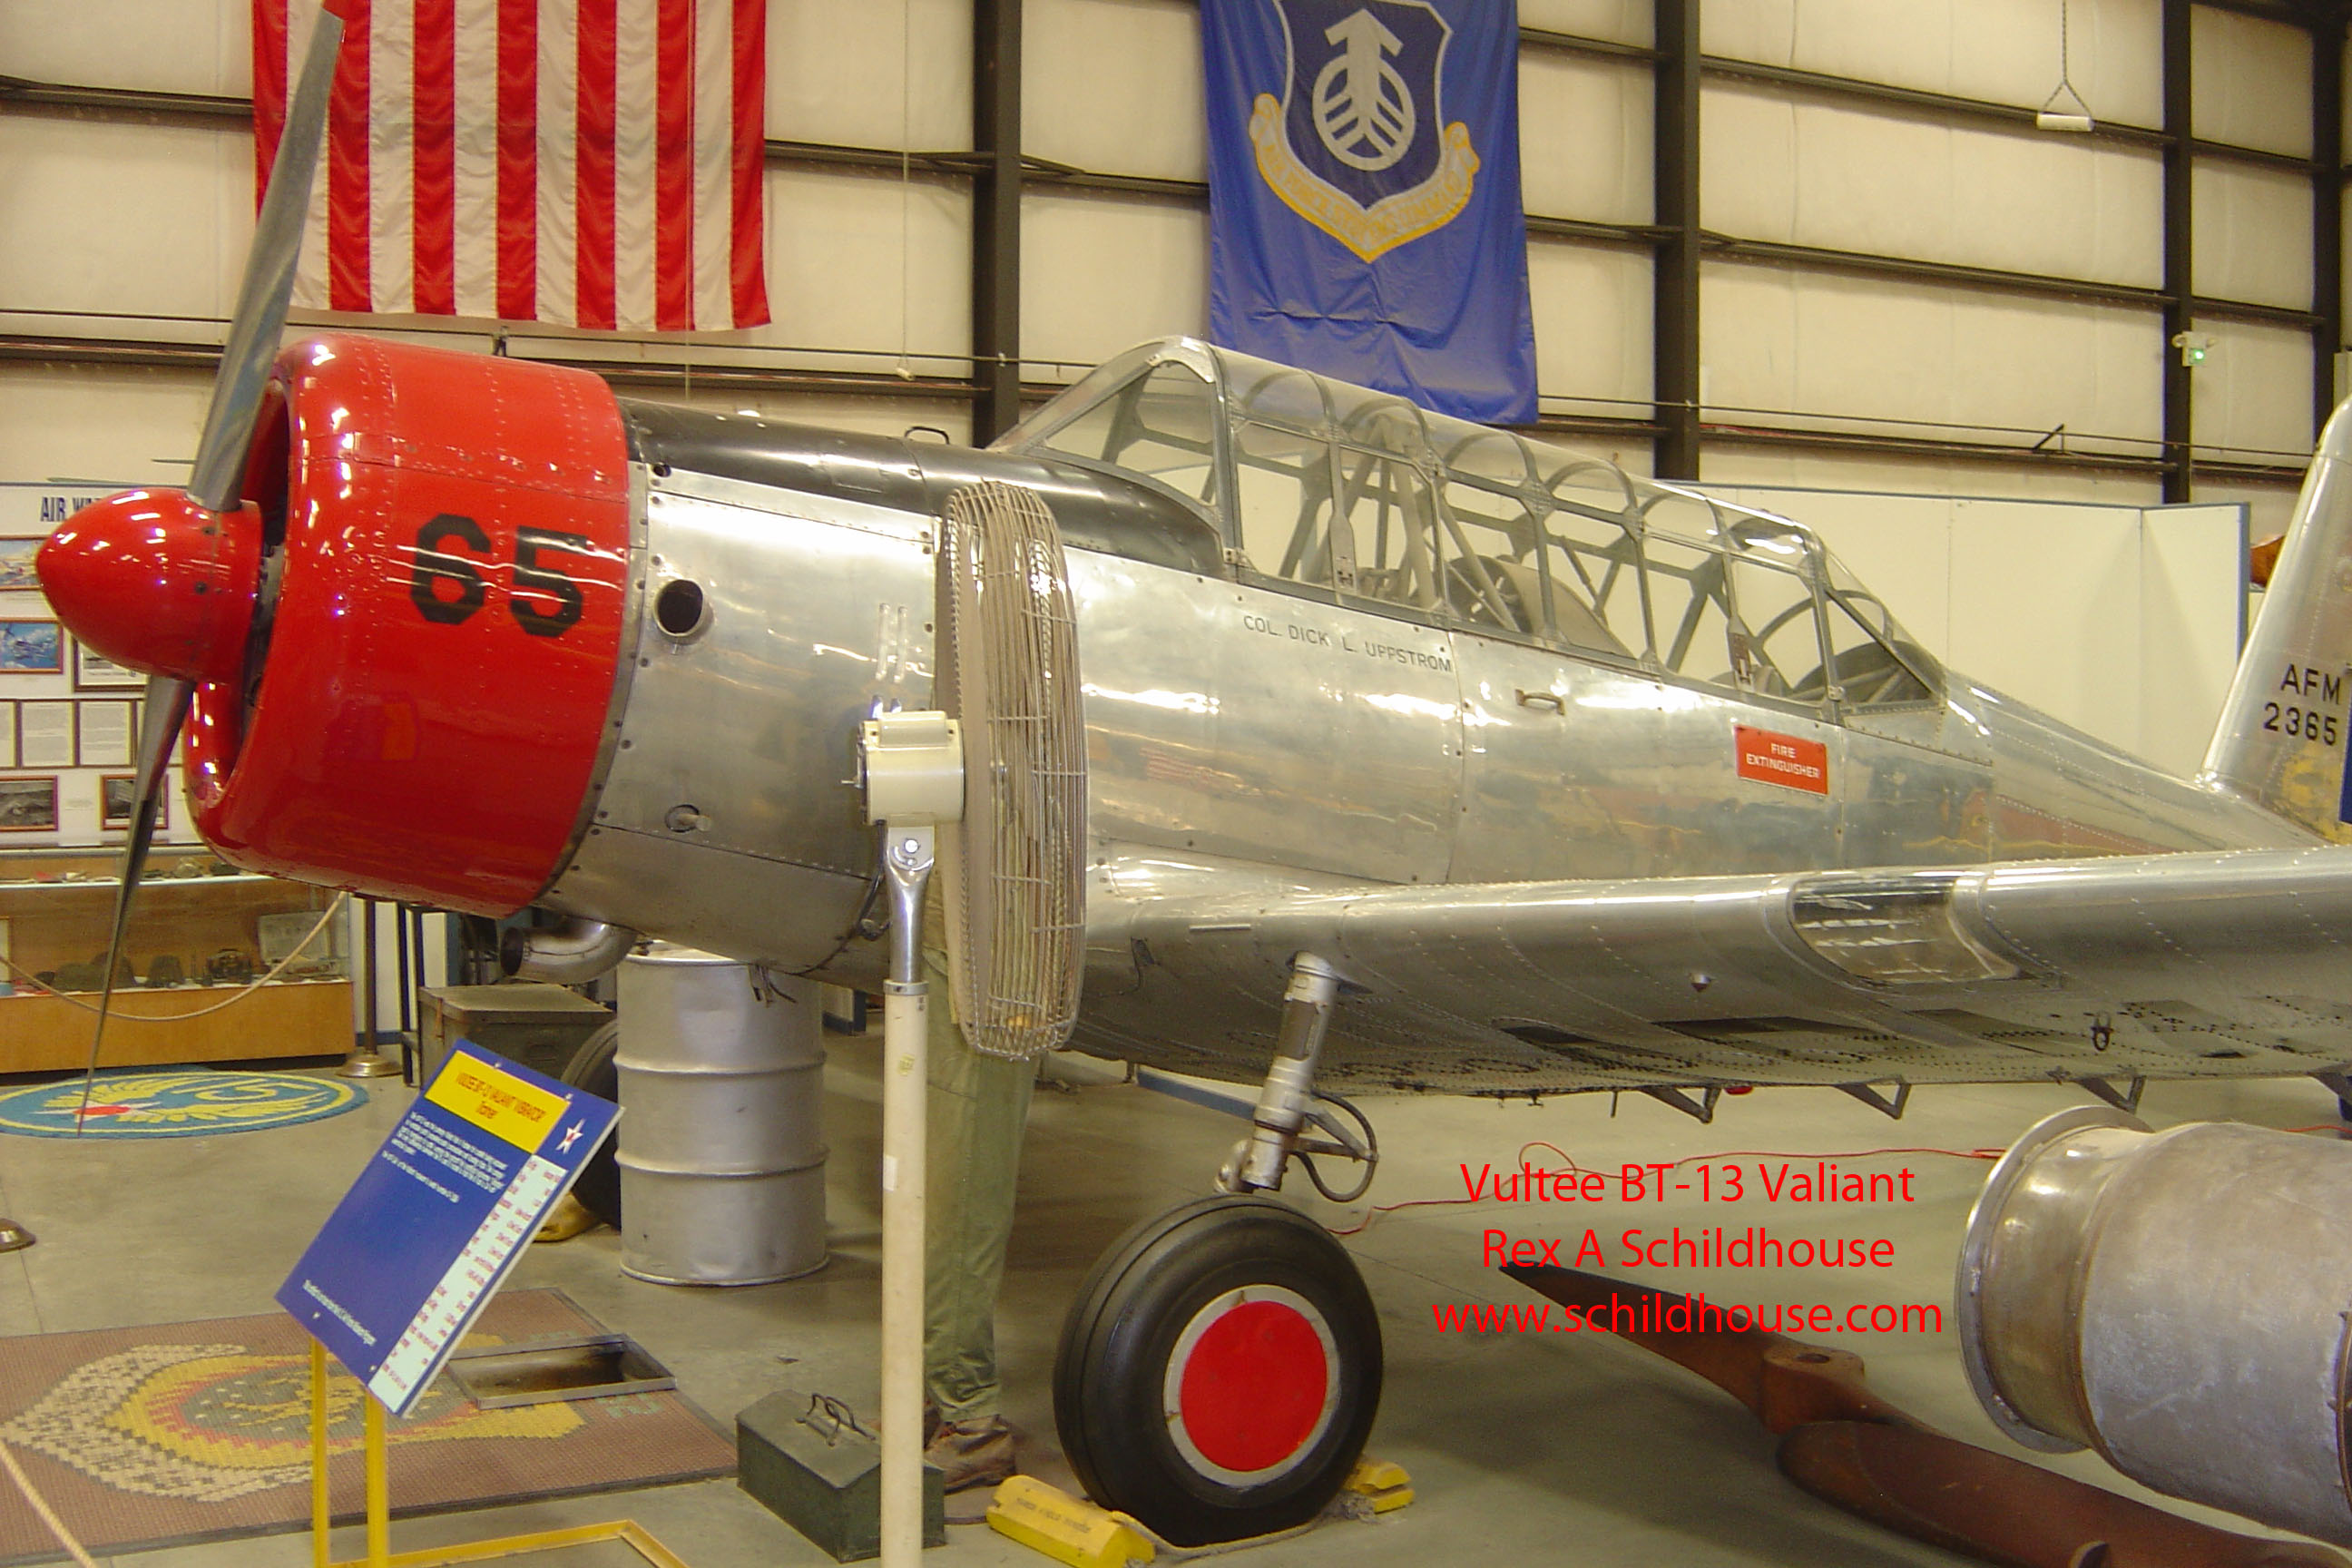 Vultee BT-13 Vailiant